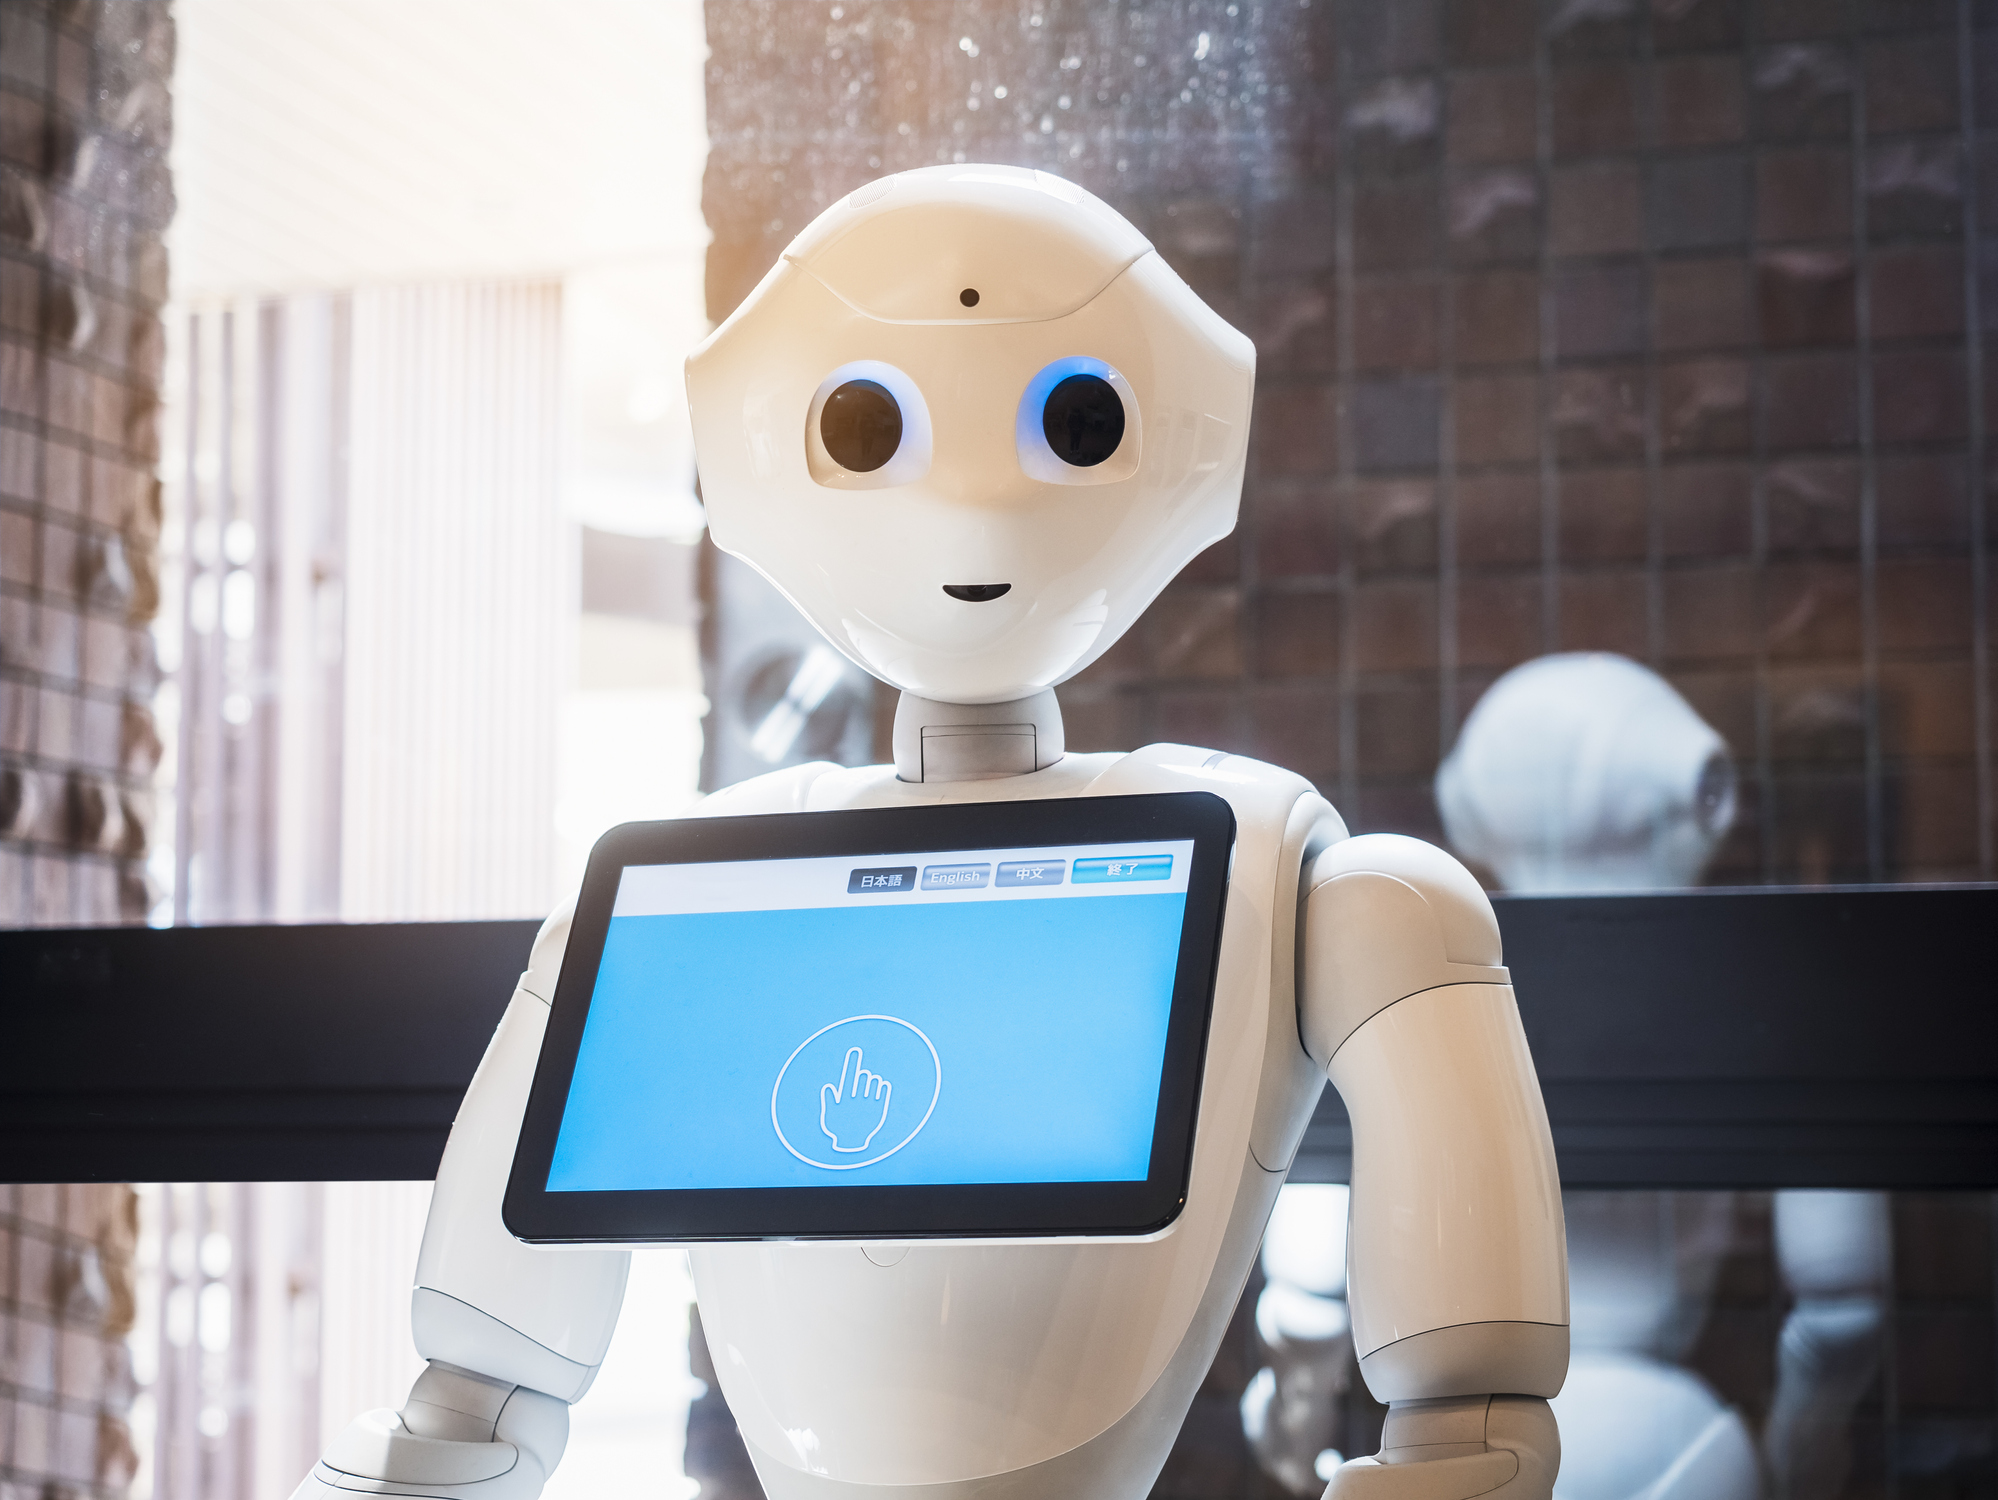 Tokyo, Japan - April 11, 2018 :Pepper Robot Assistant with Information screen Japan Humanoid technology